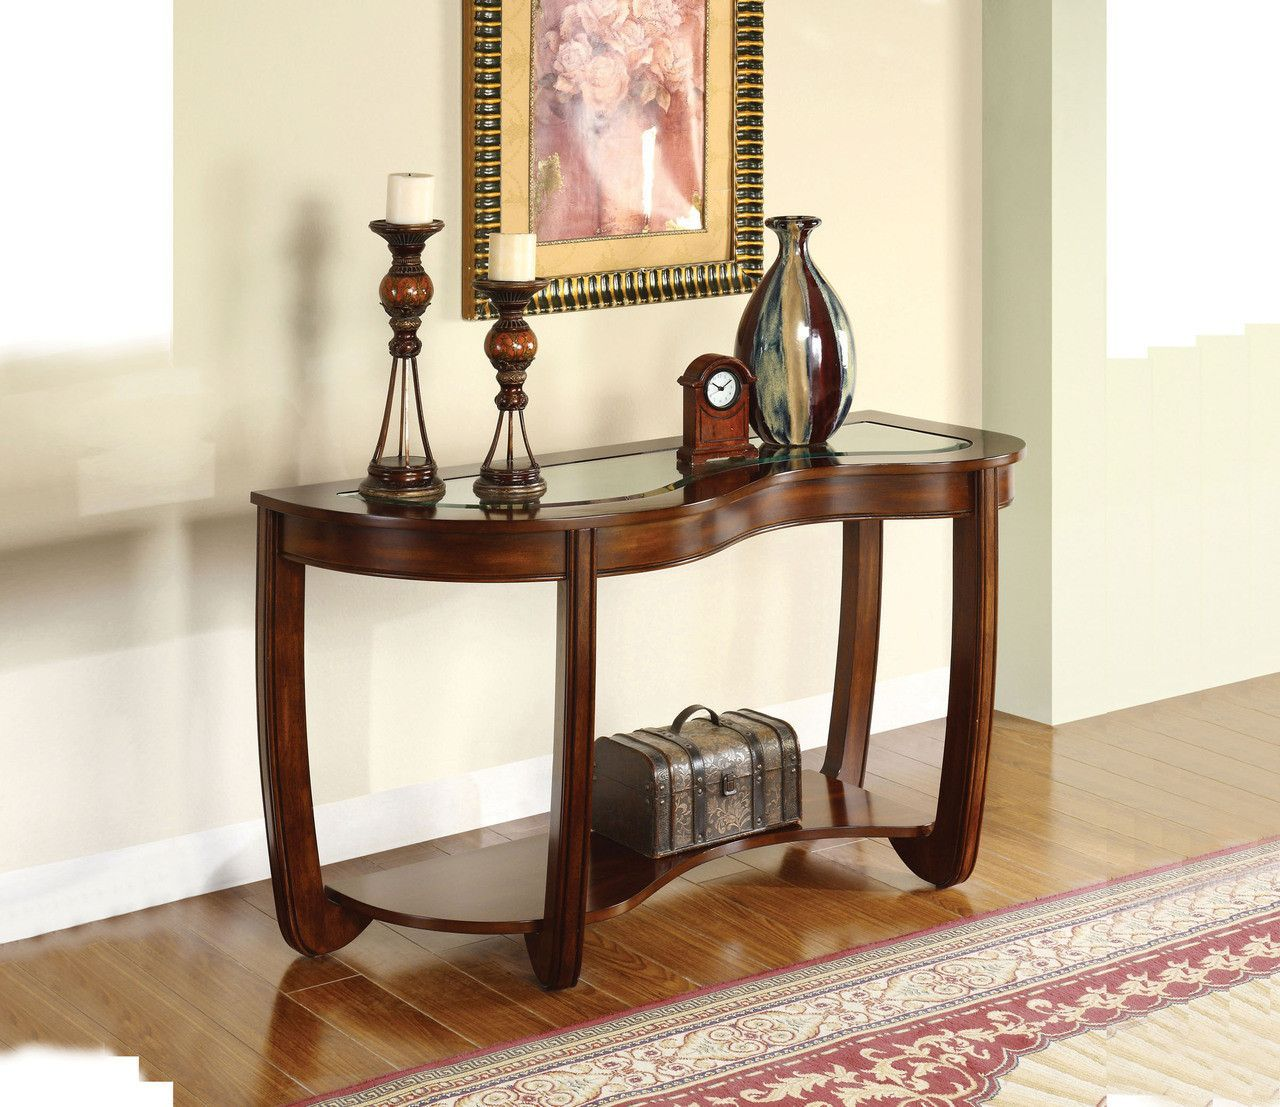 Hallway furniture habitat  Sofa Table Crystal Falls Collection CMS The gentle curves of